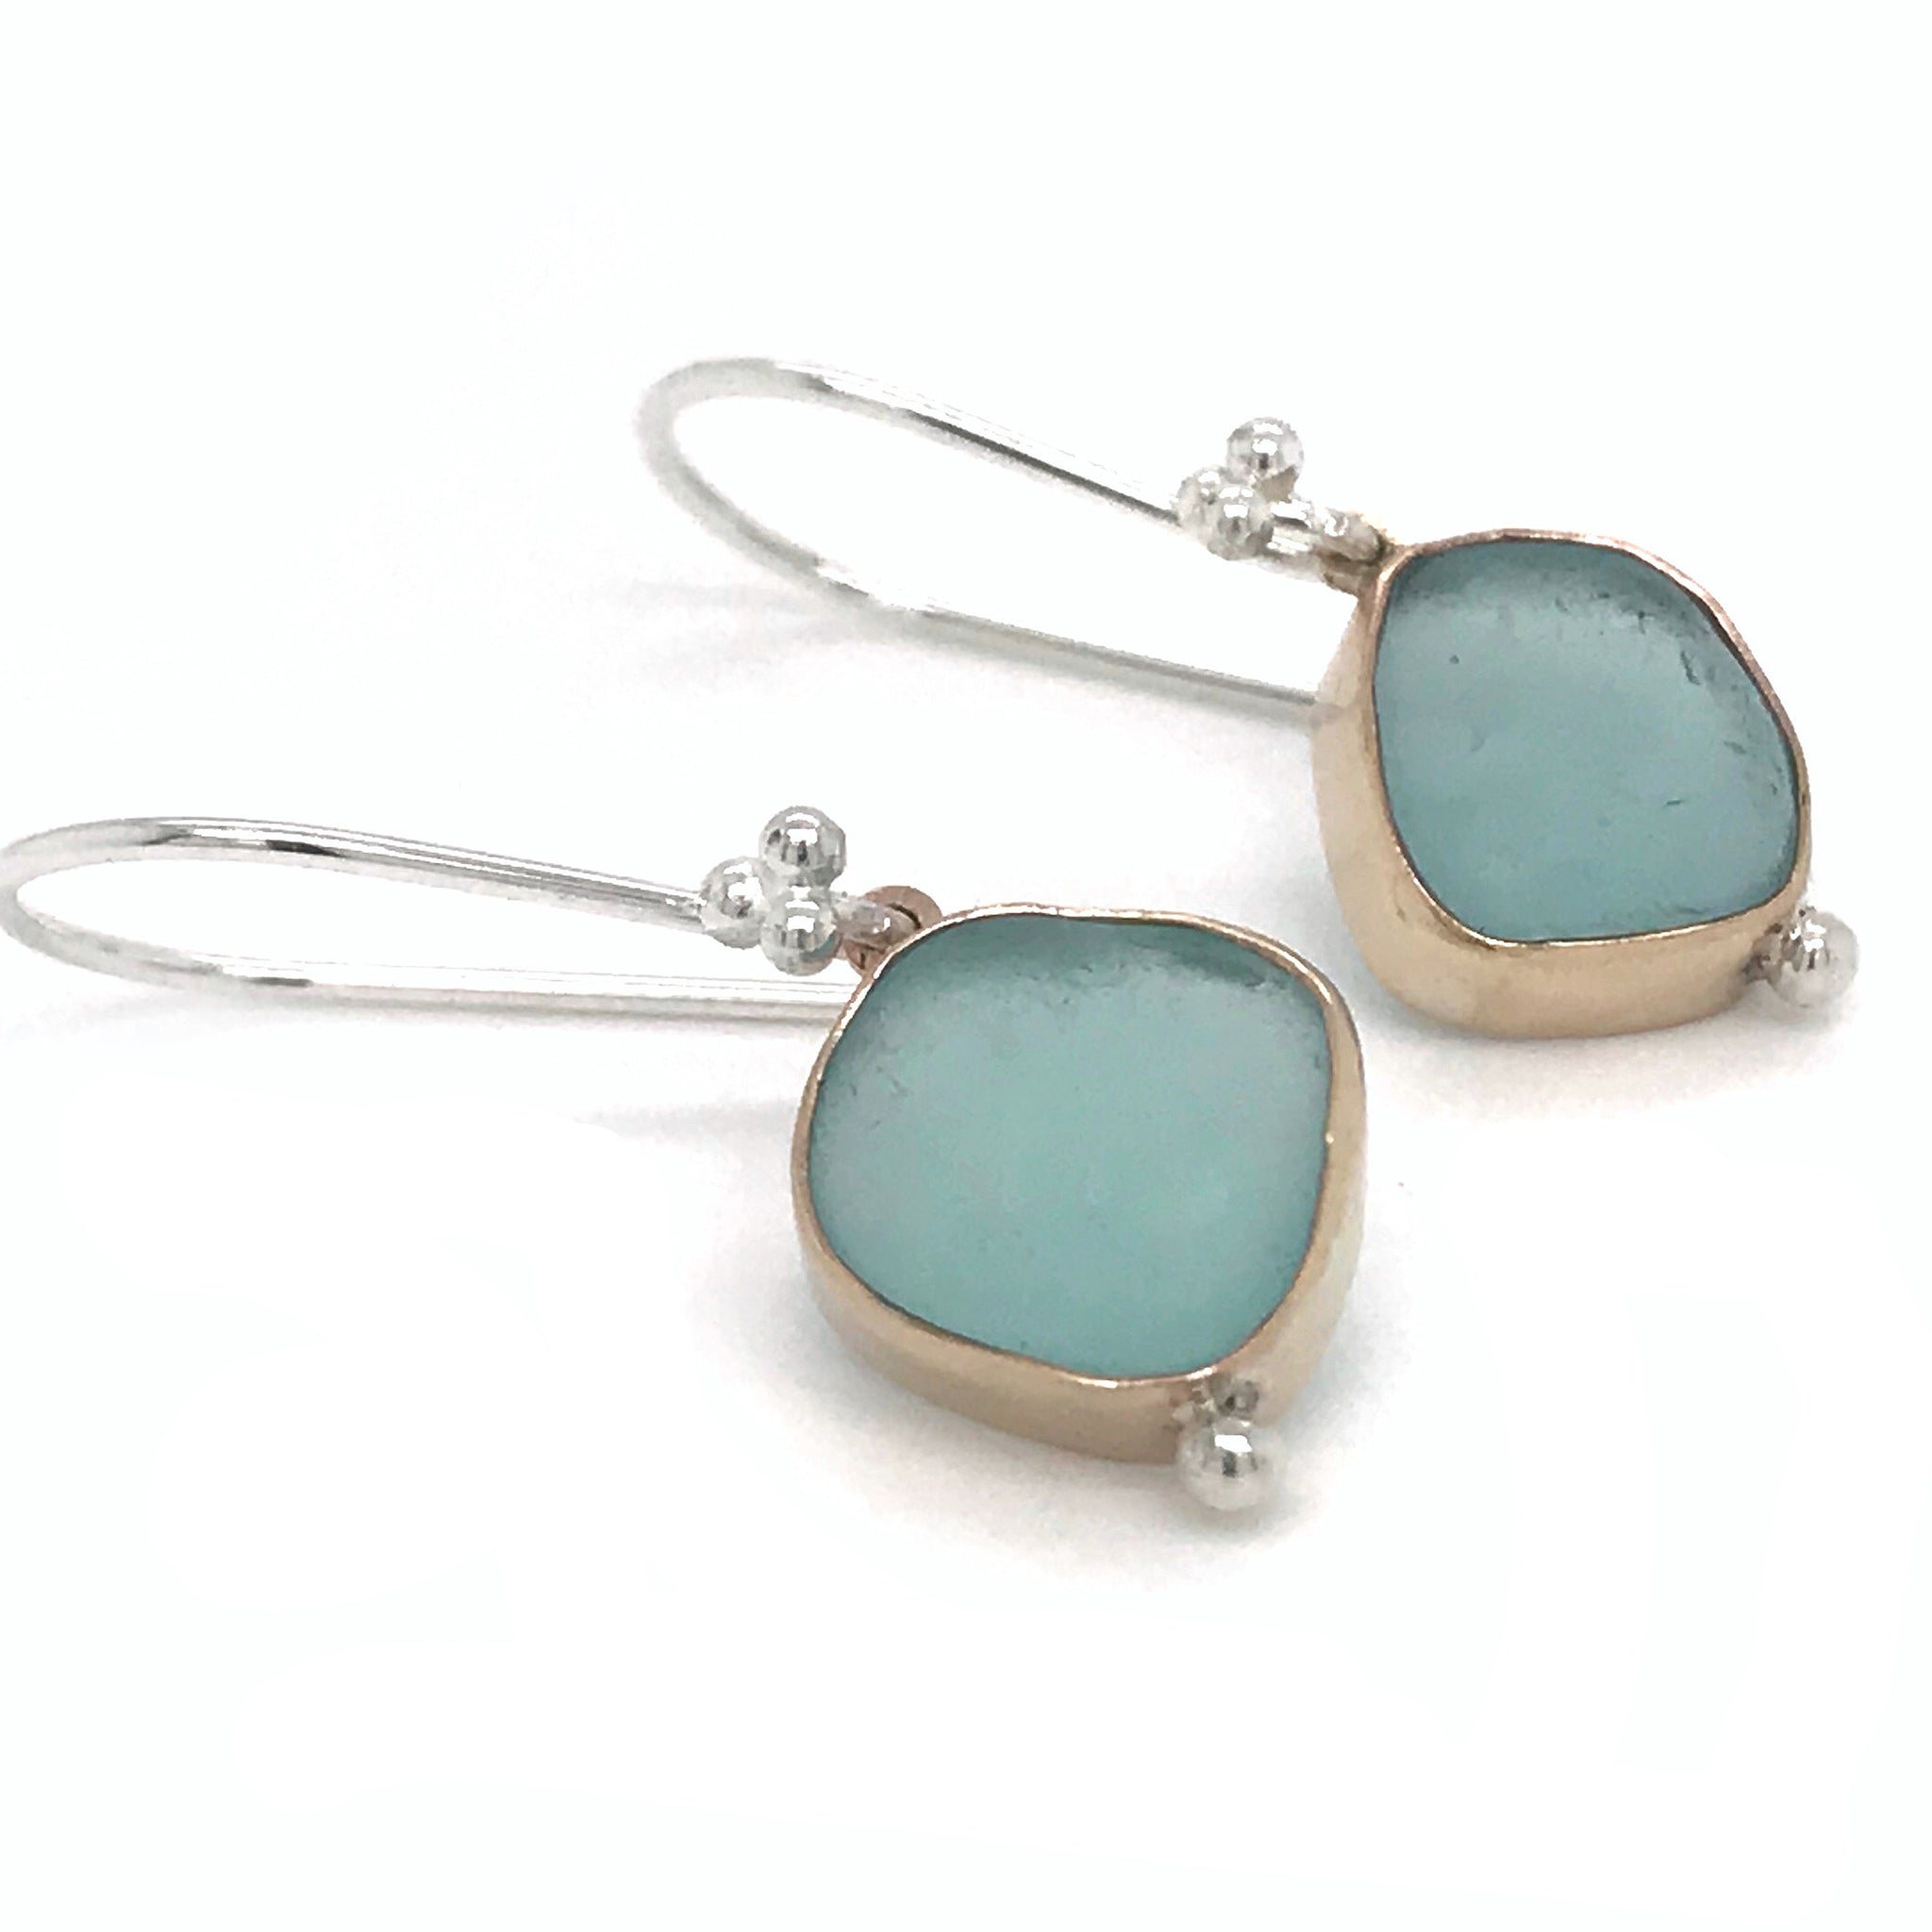 Aqua Seaglass Earrings Bezel Set in 14k Gold